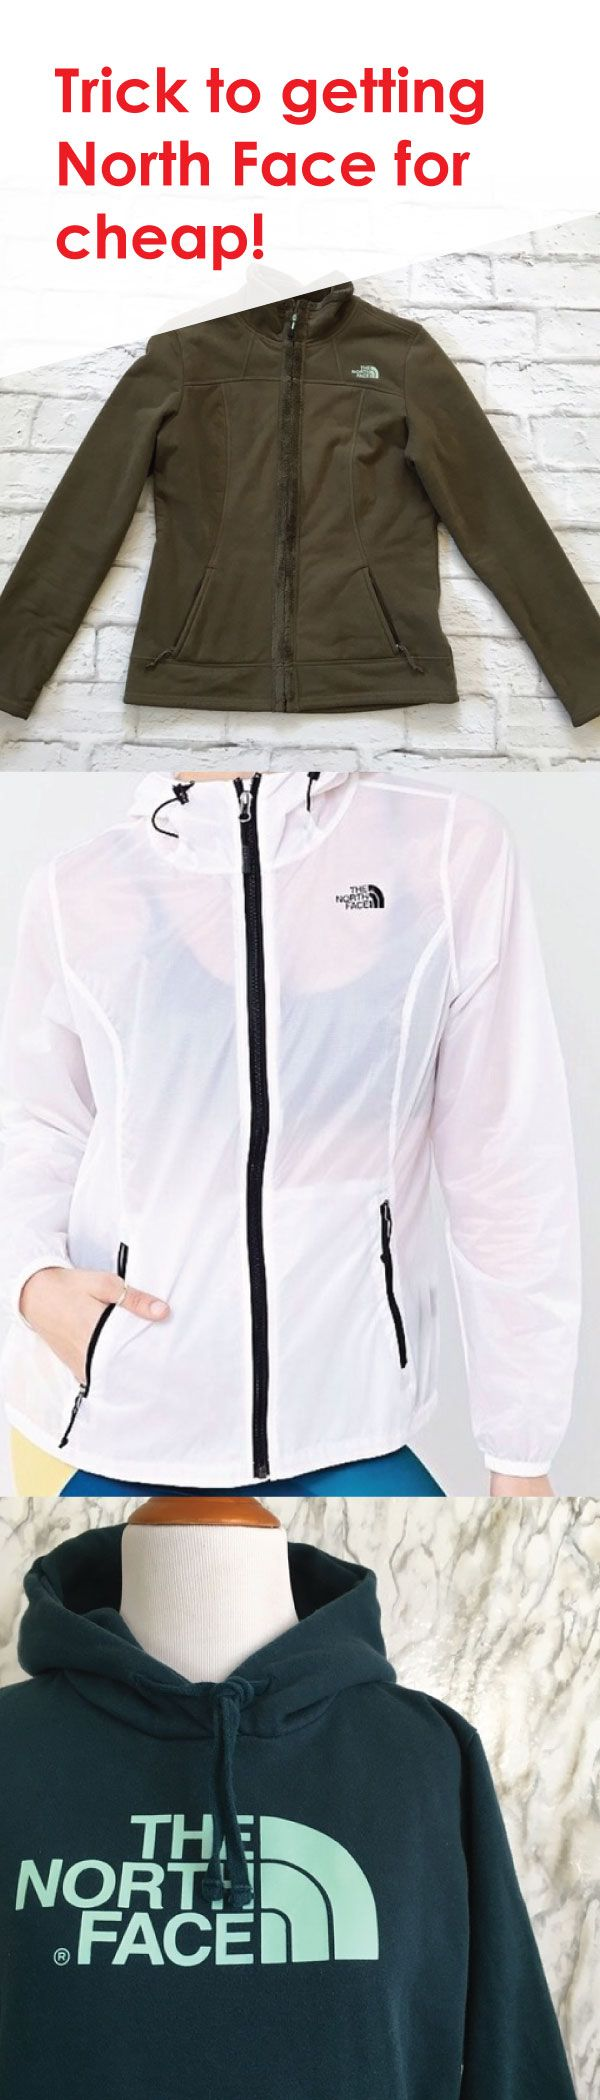 Why pay full price for winter jackets when you can find authentic The North Face gear for up to 70% off on Poshmark? Click to download FREE and start shopping!